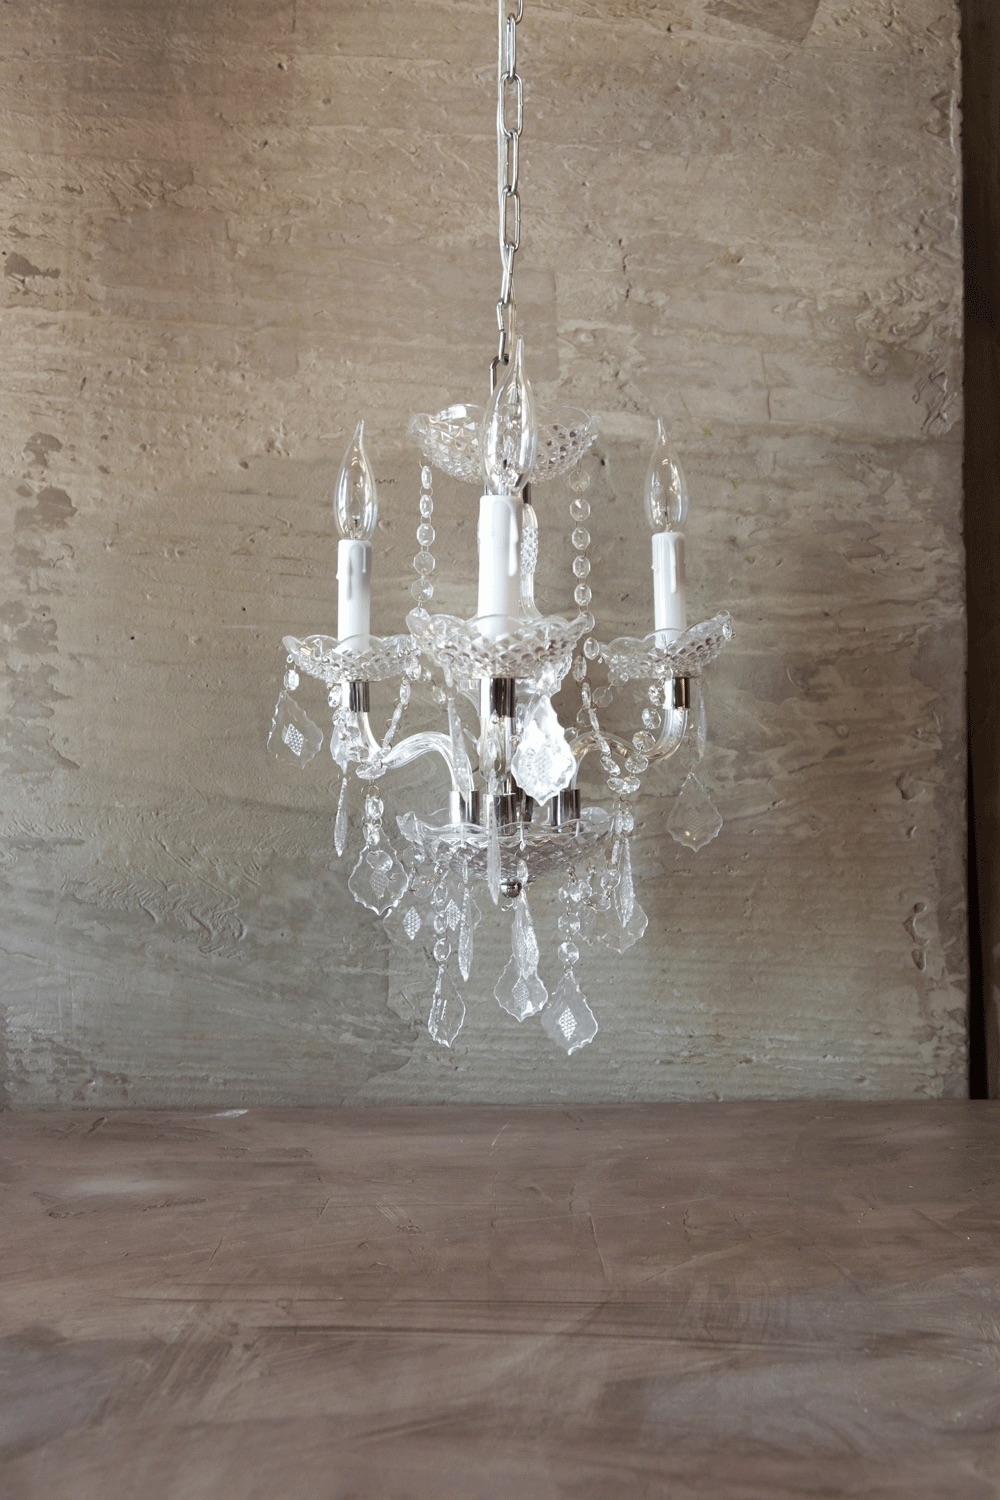 Faux Crystal Chandelier Medium $115